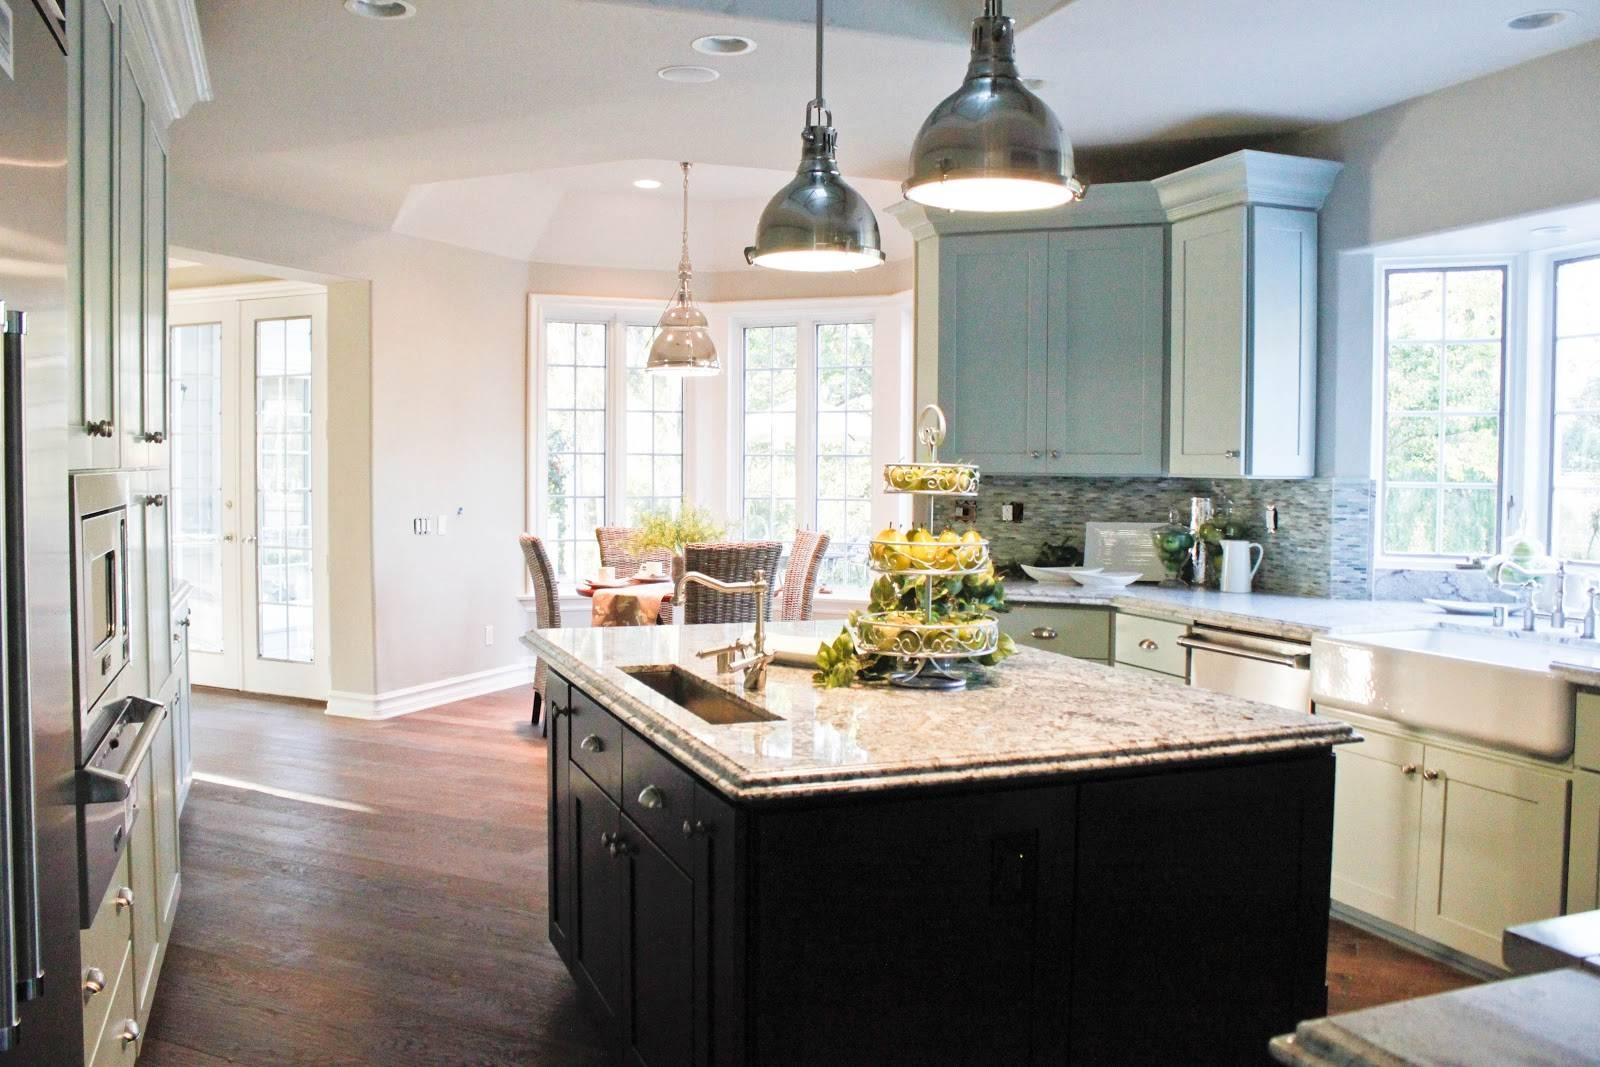 Pendant Light Fixtures For Kitchen Island – Baby Exit Intended For Lighting Pendants For Kitchen Islands (View 5 of 15)